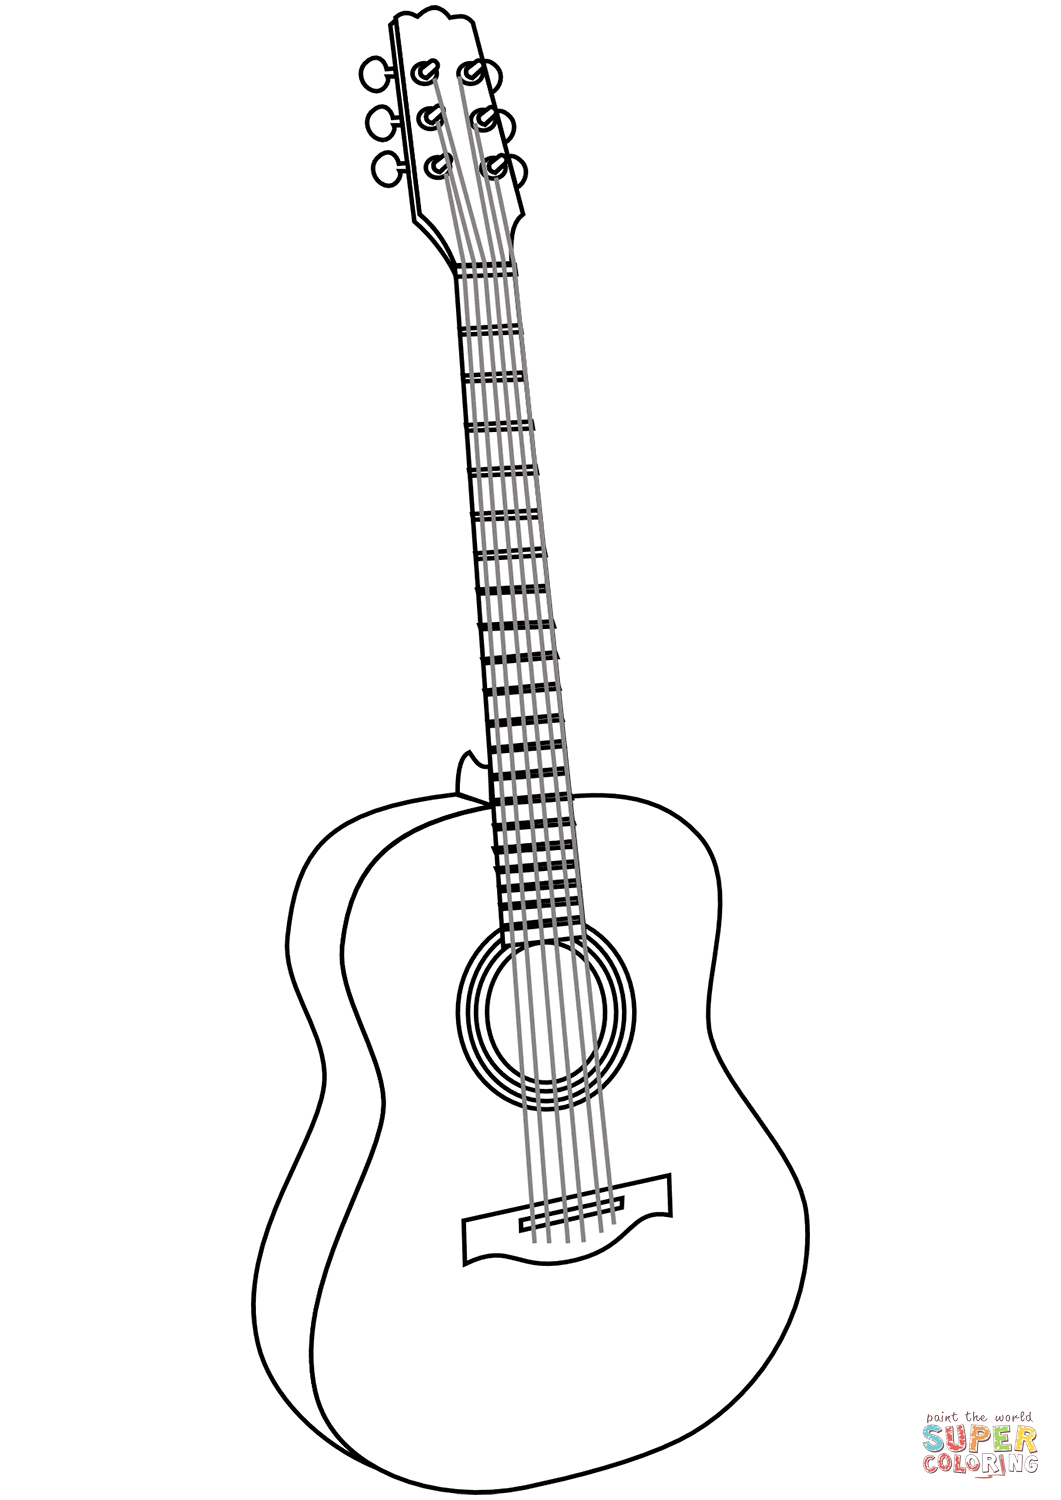 Guitar Coloring Page Free Printable Coloring Pages Free Printable Coloring Guitar Kids Coloring Pages